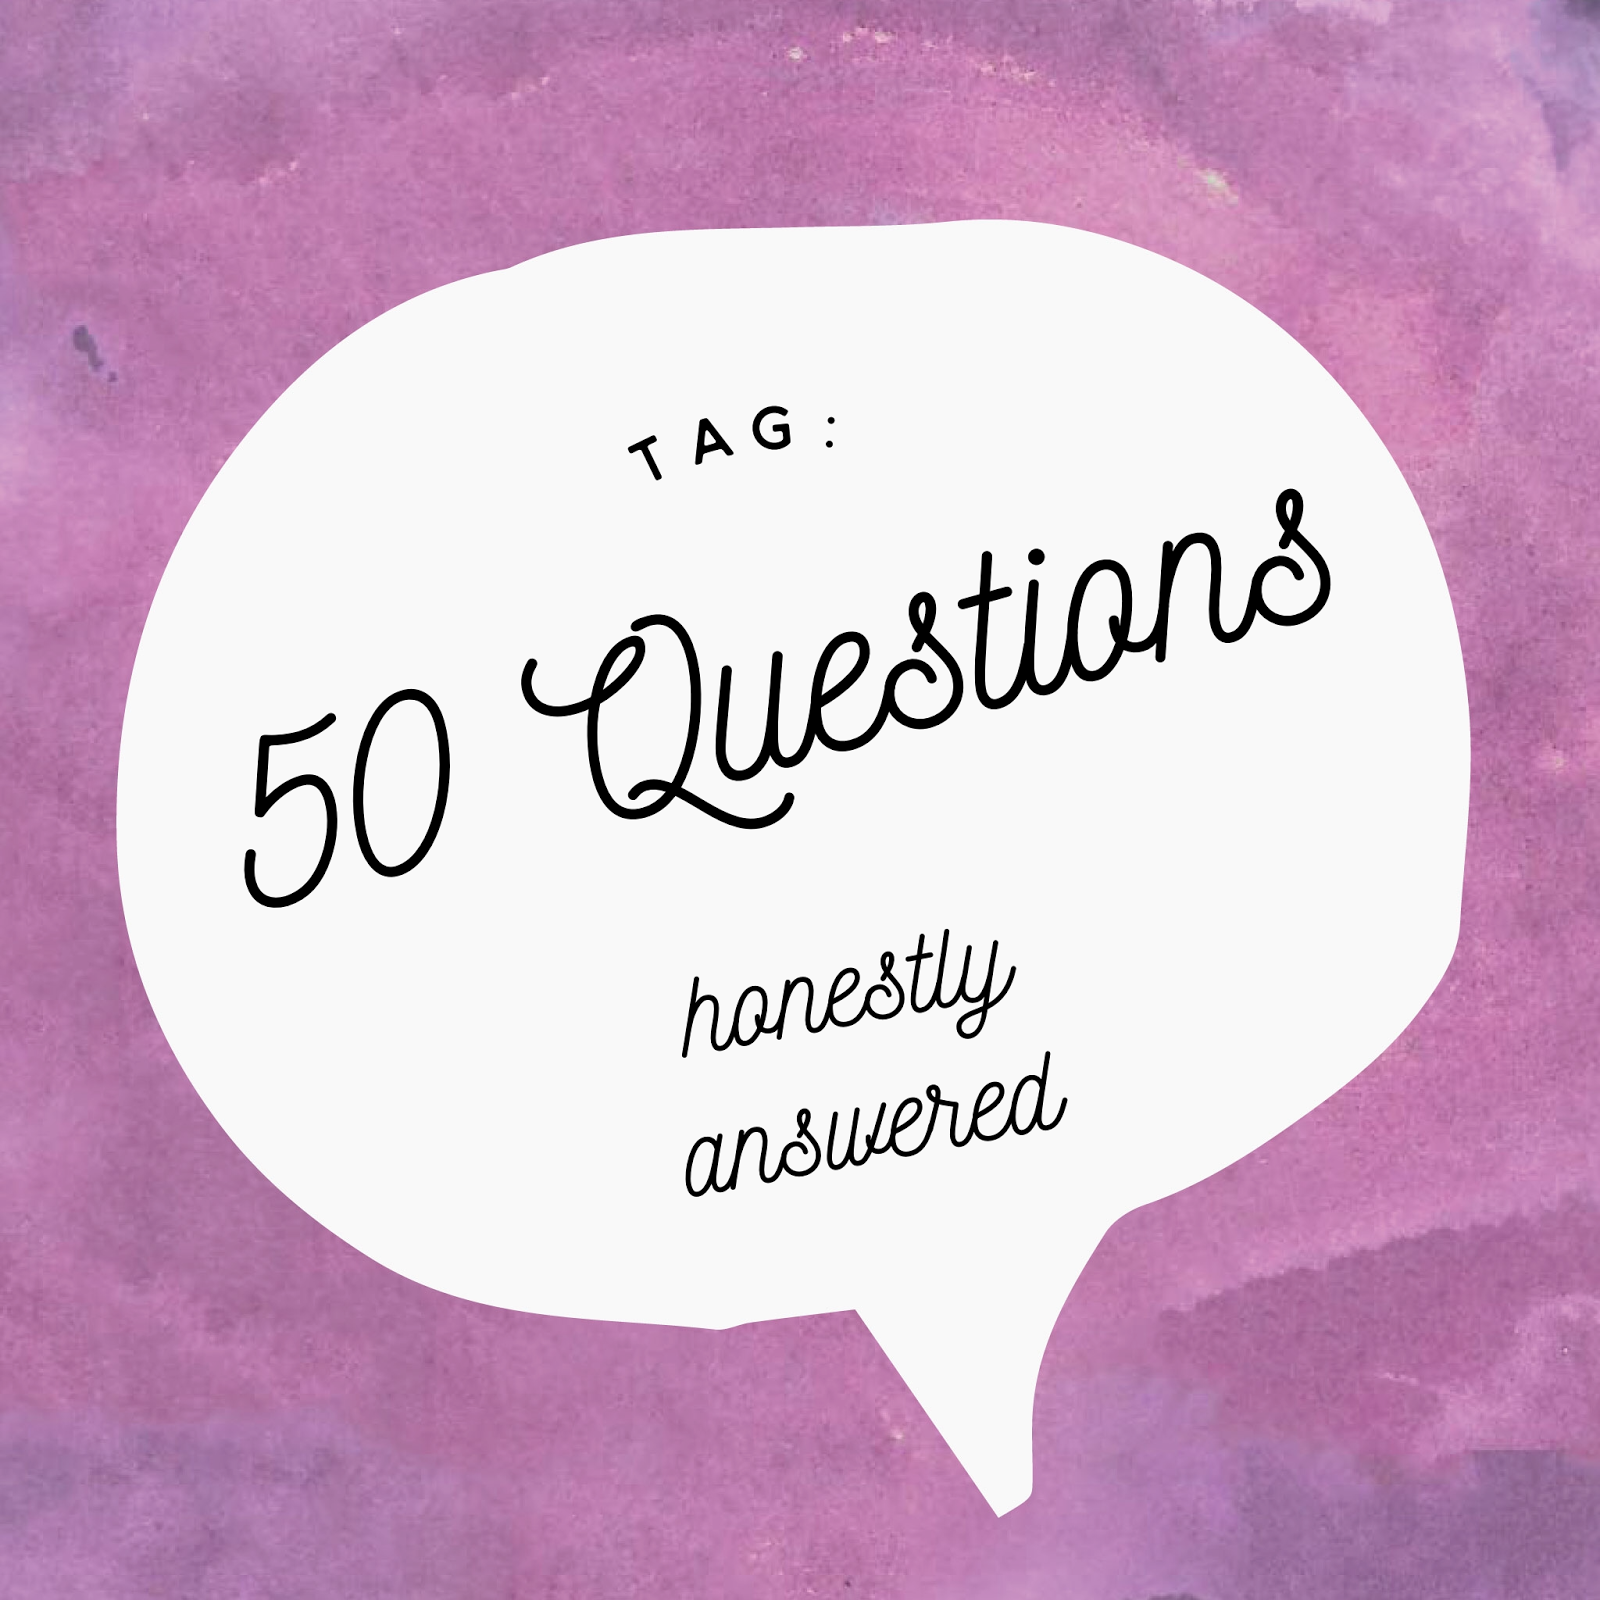 tag 50 questions honestly answered